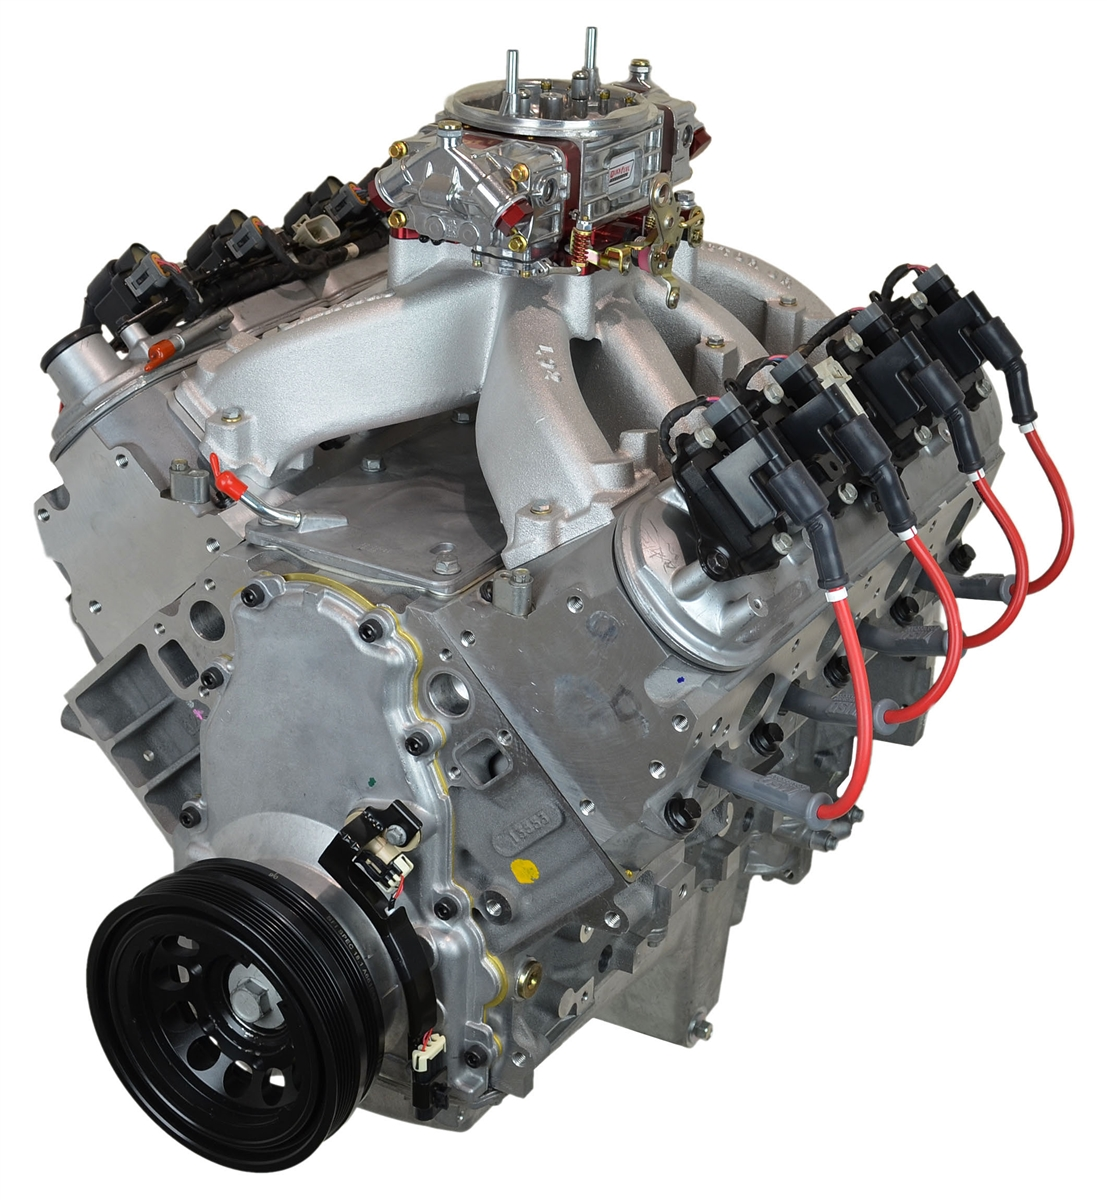 Ls3 Engine Came In What Cars: Chevy LS3 415 Stroker Complete Engine 620+ HP